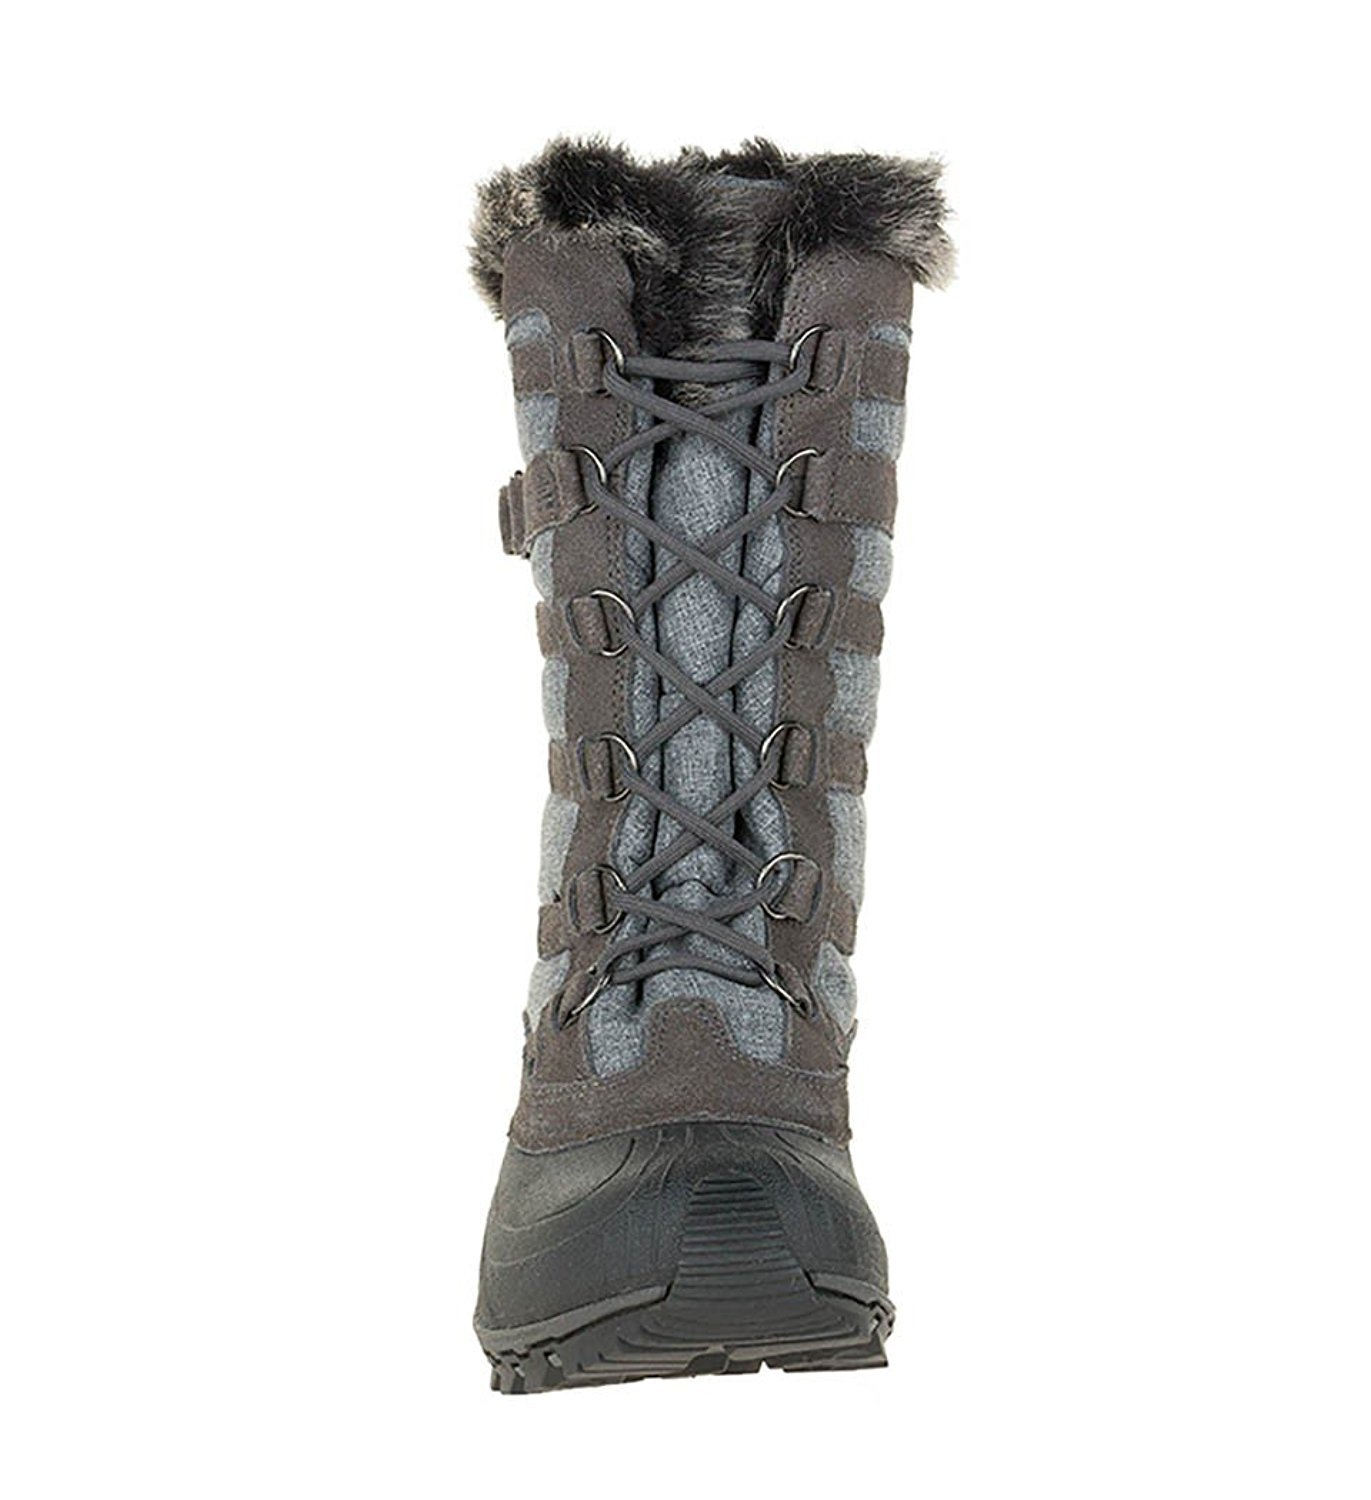 Kamik Women's B(M) Snowvalley Boot B00HSYDMW4 10 B(M) Women's US|Charcoal 91595c